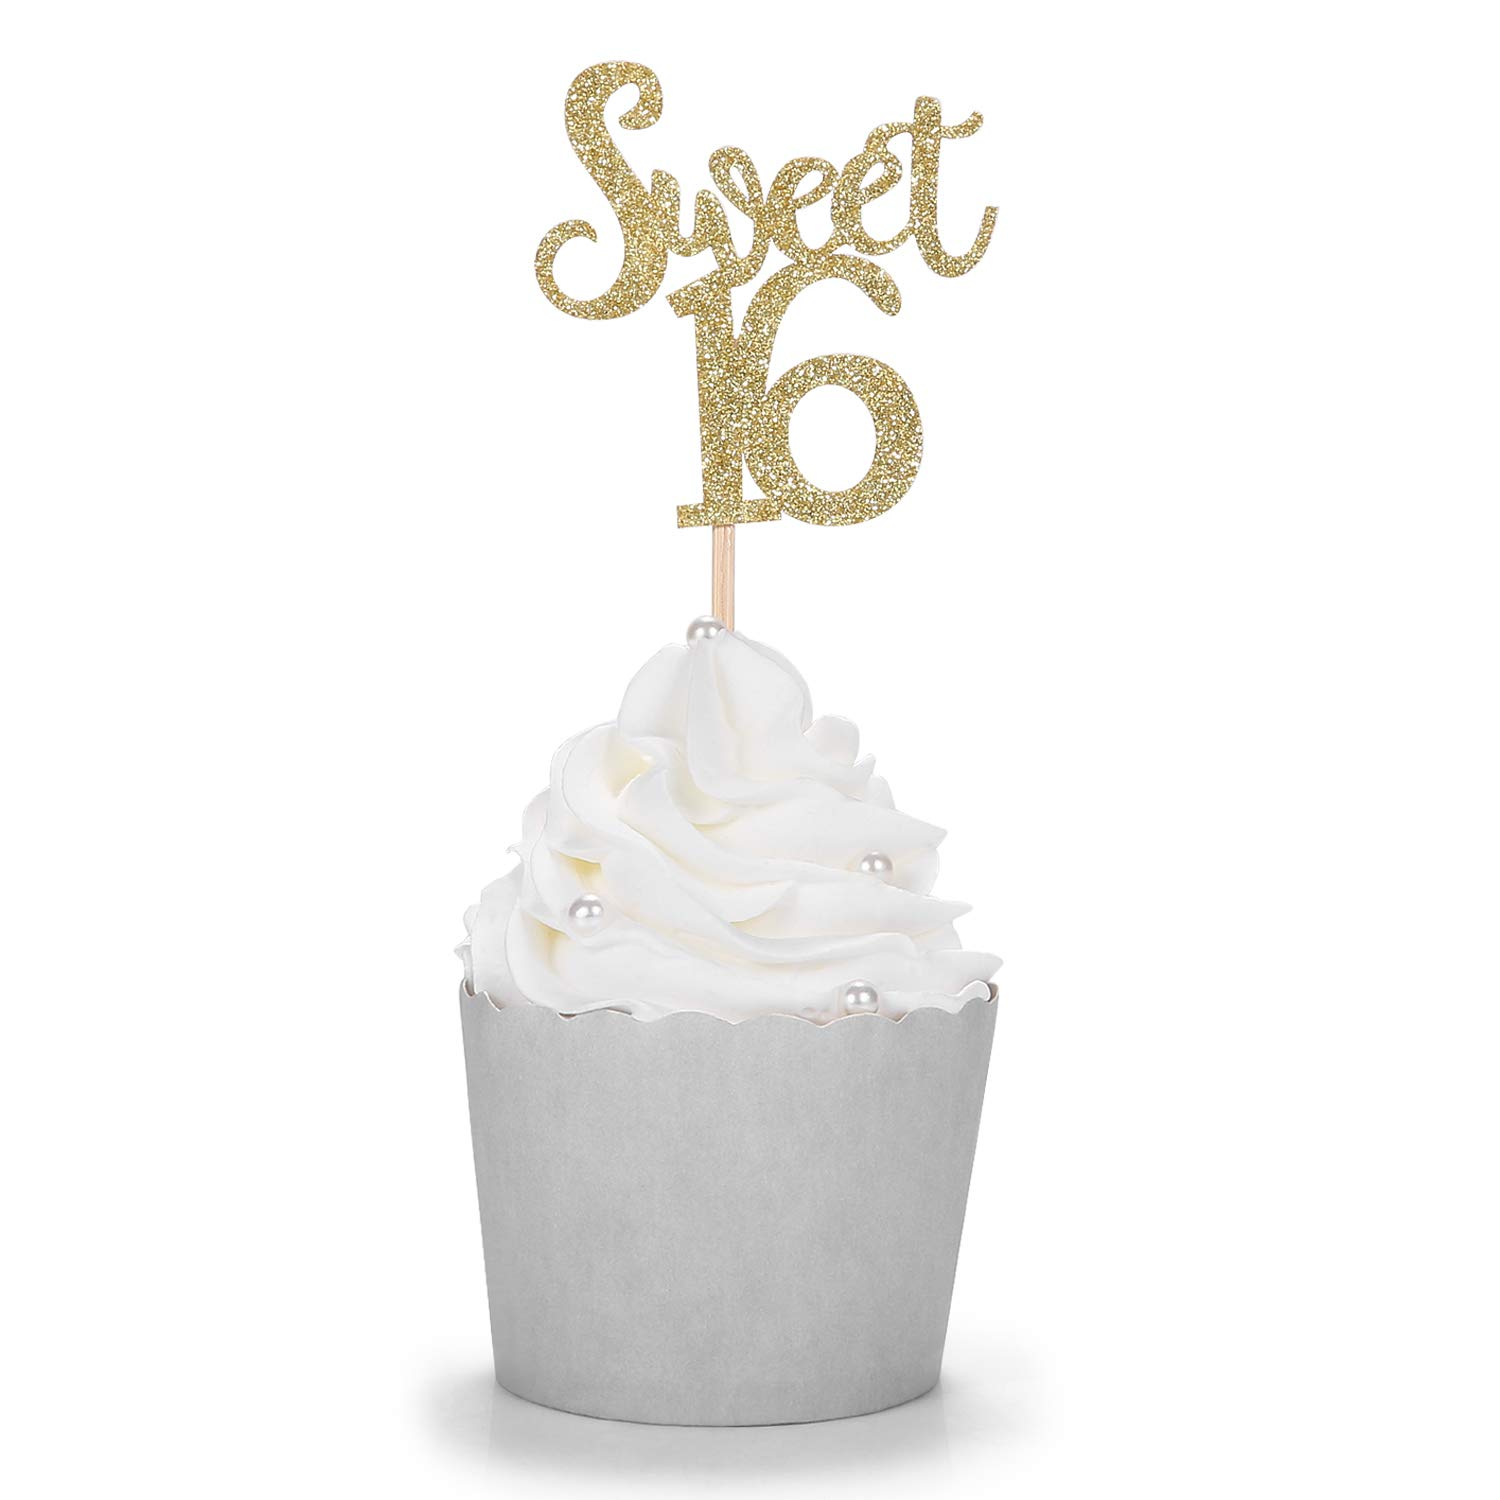 Gold Glitter Sweet 16 Cupcake Toppers Handcrafted 16th Birthday Party Decors